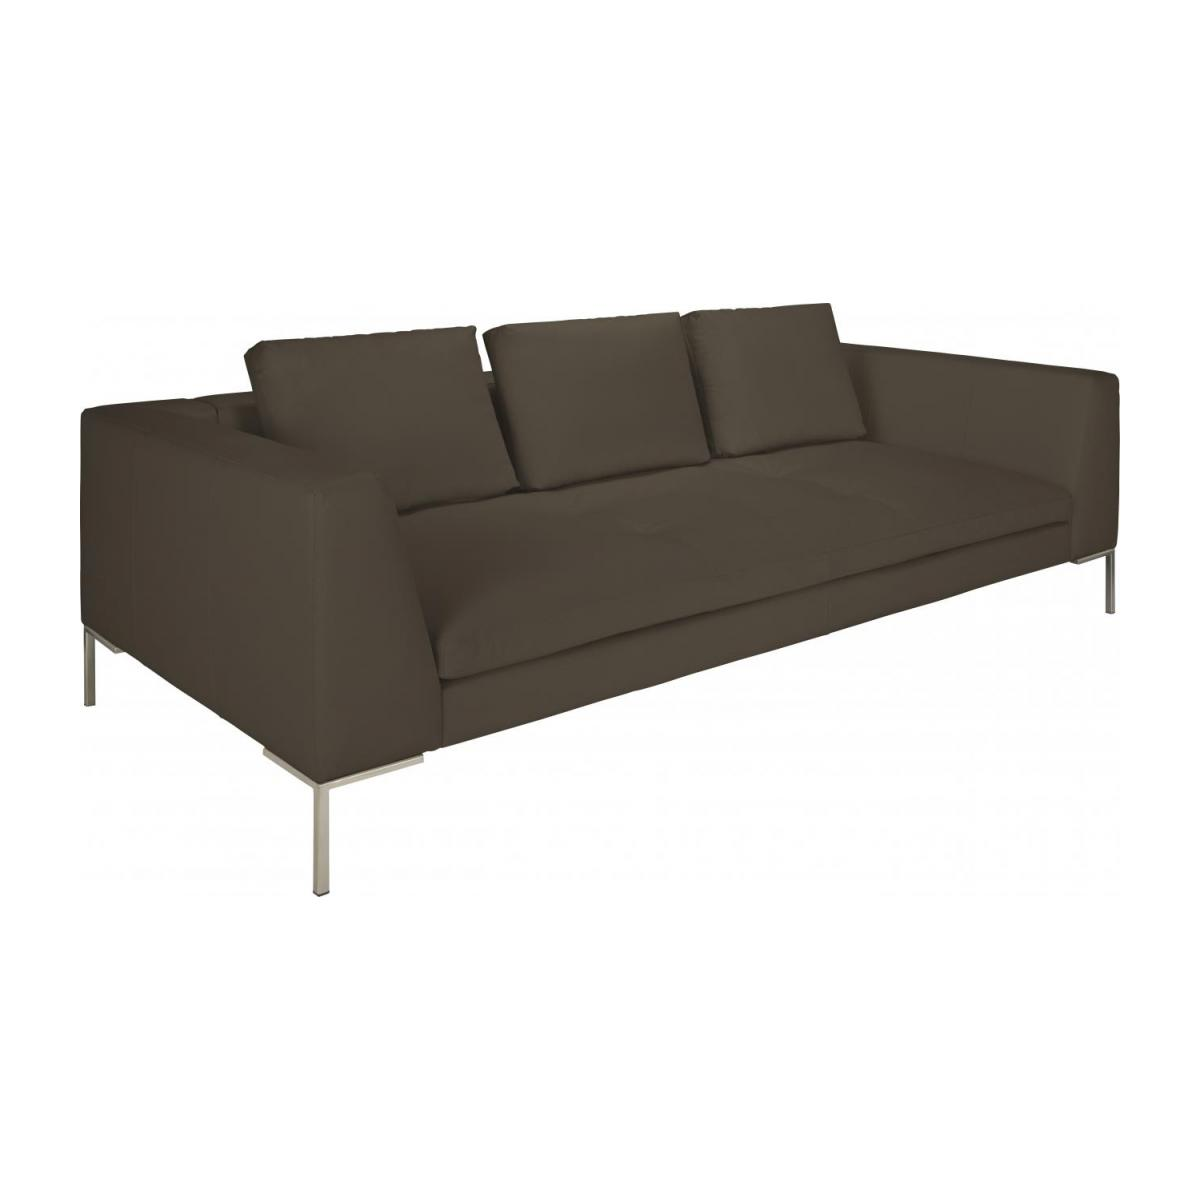 3 seater sofa in Eton veined leather, stone n°1